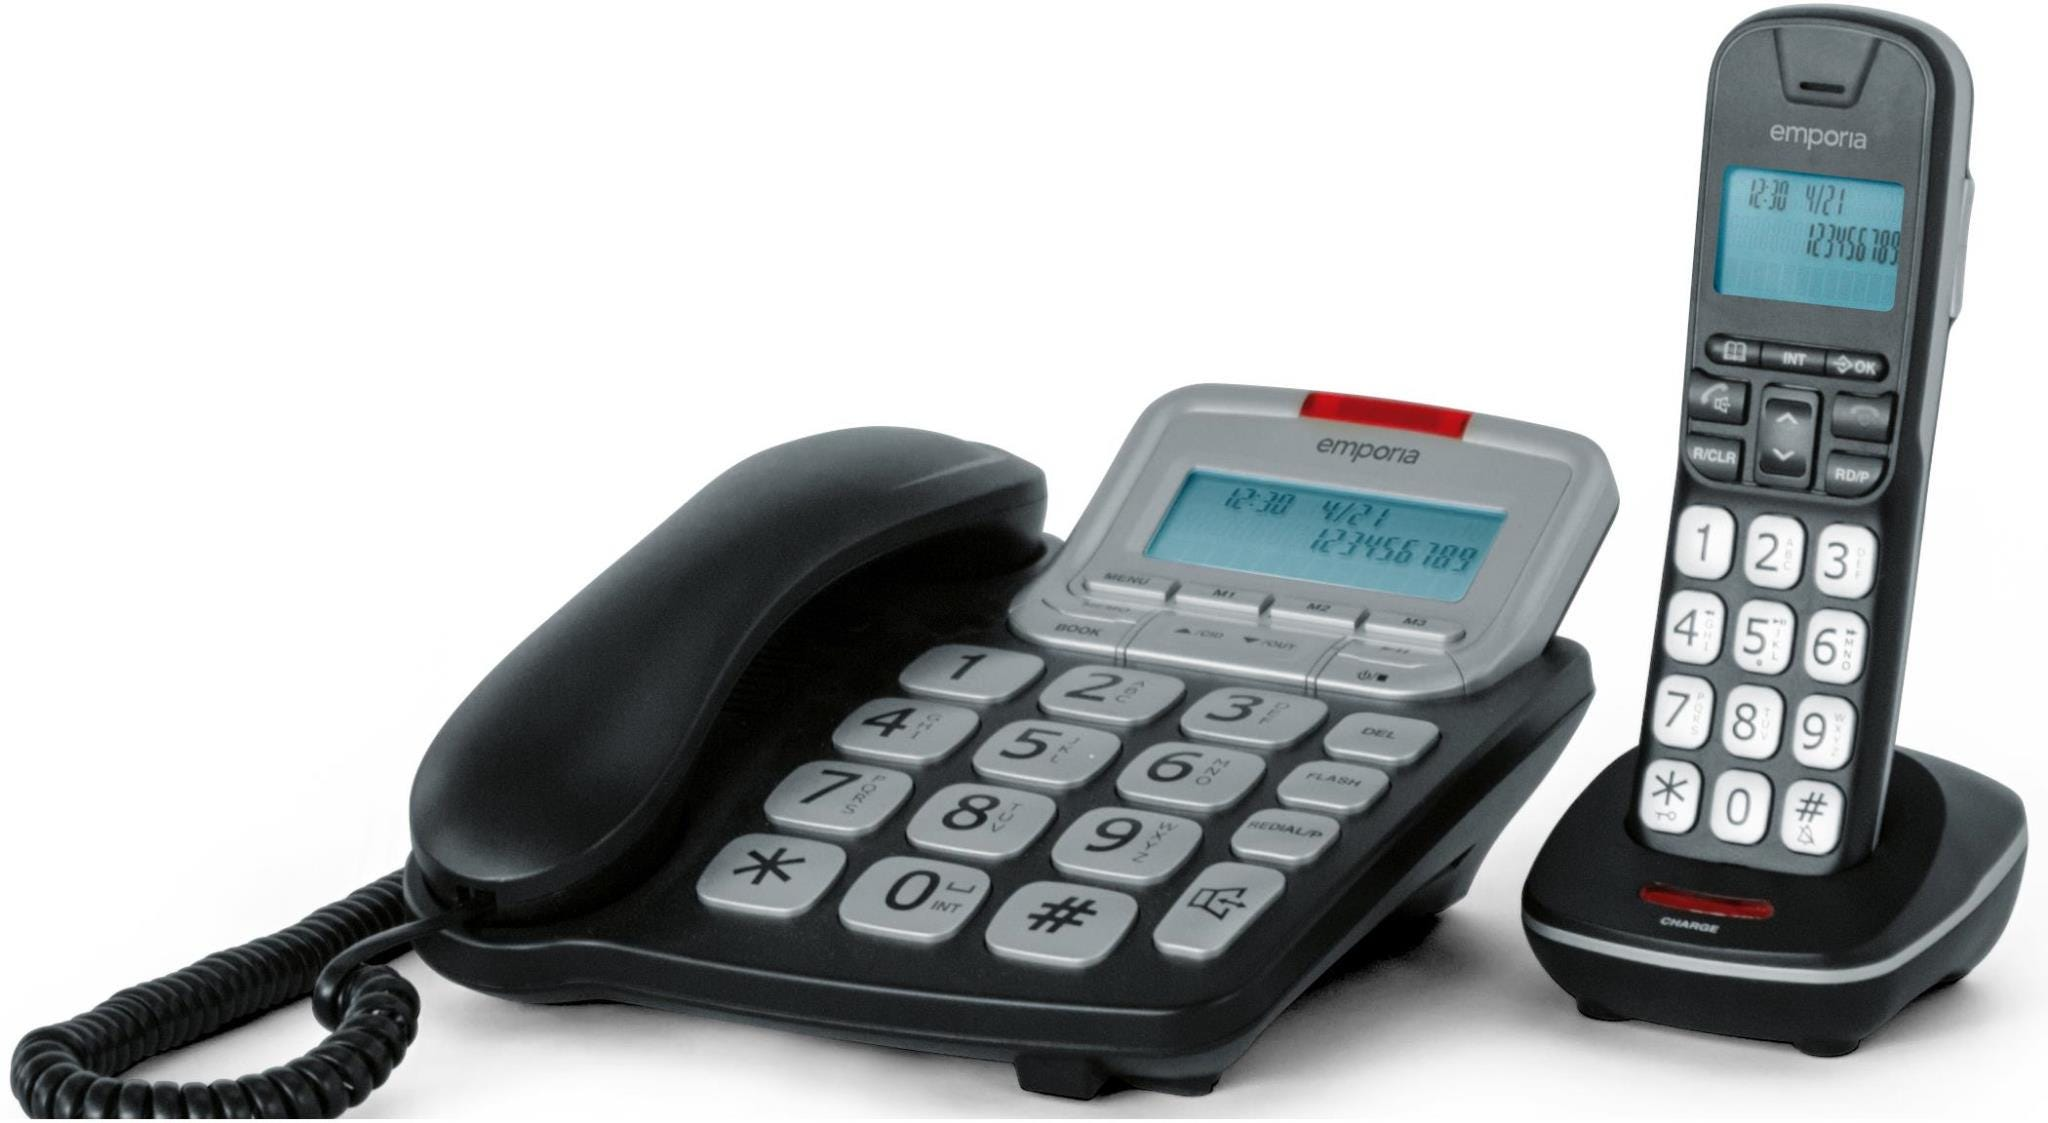 Image of Emporia GD61-ABB Corded and Big Button DECT Phone with Digital Answering Machine